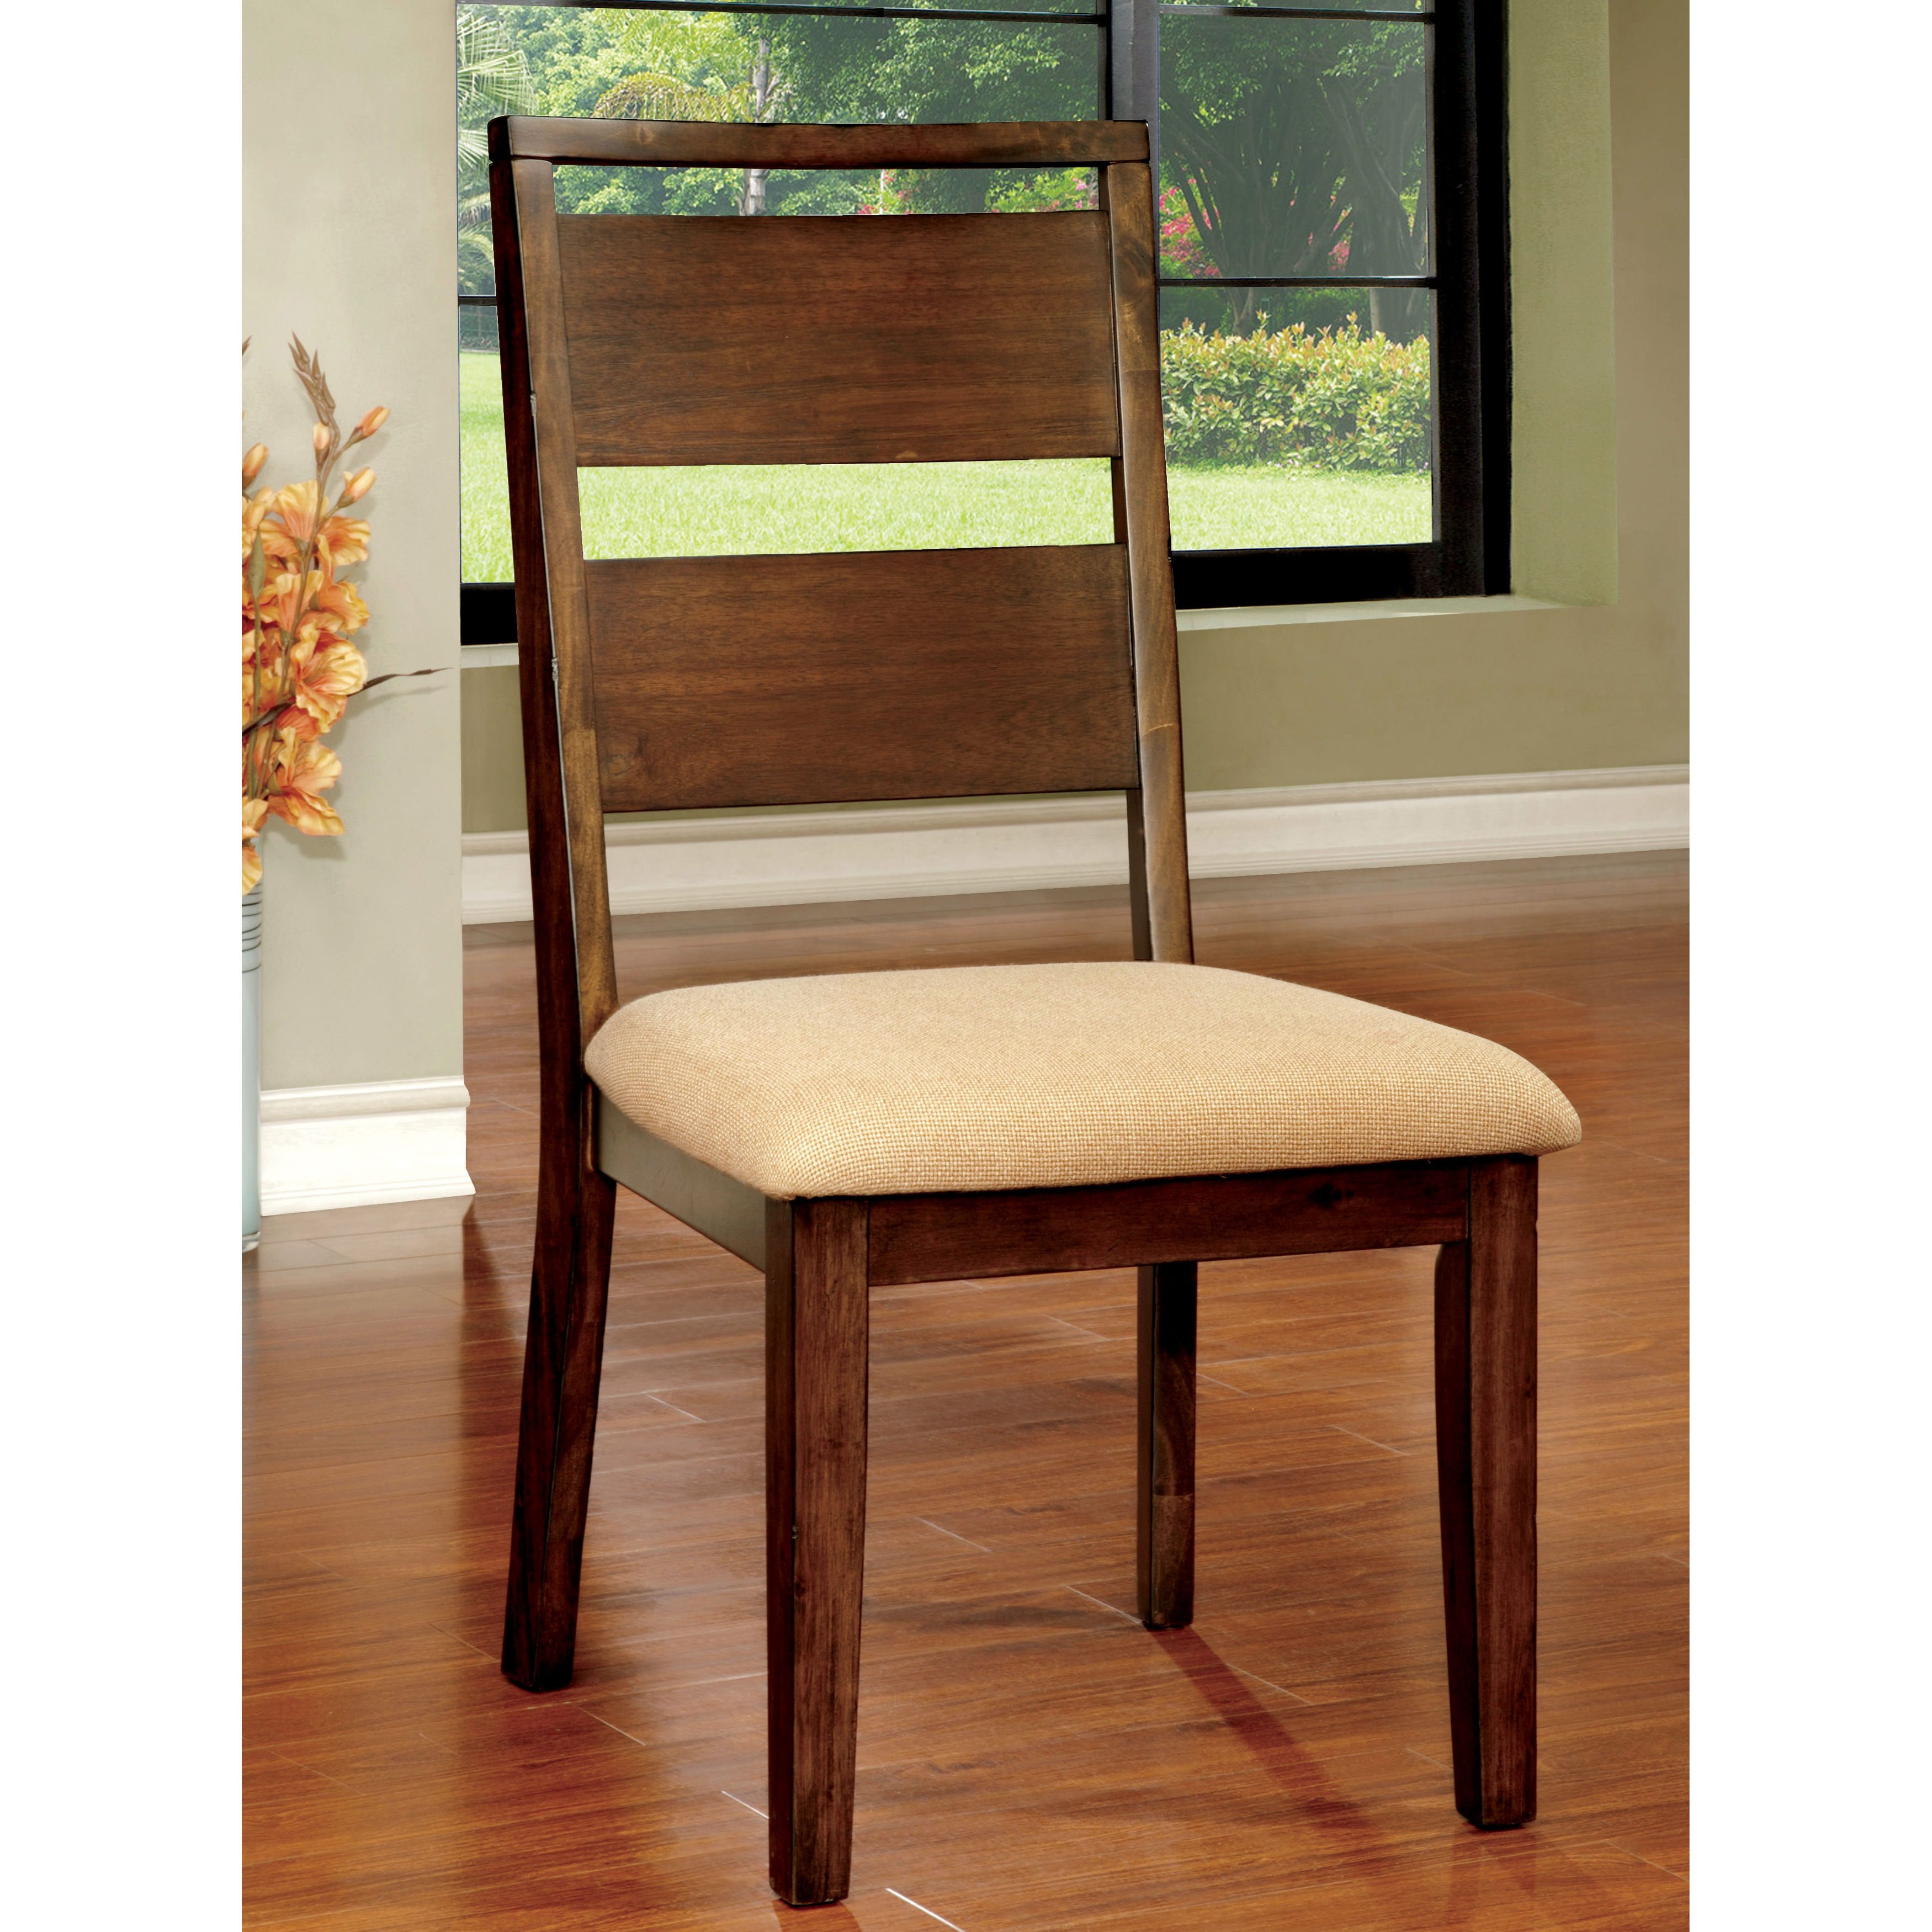 oak kitchen chairs desk chair home depot furniture of america dark elena dining set 2